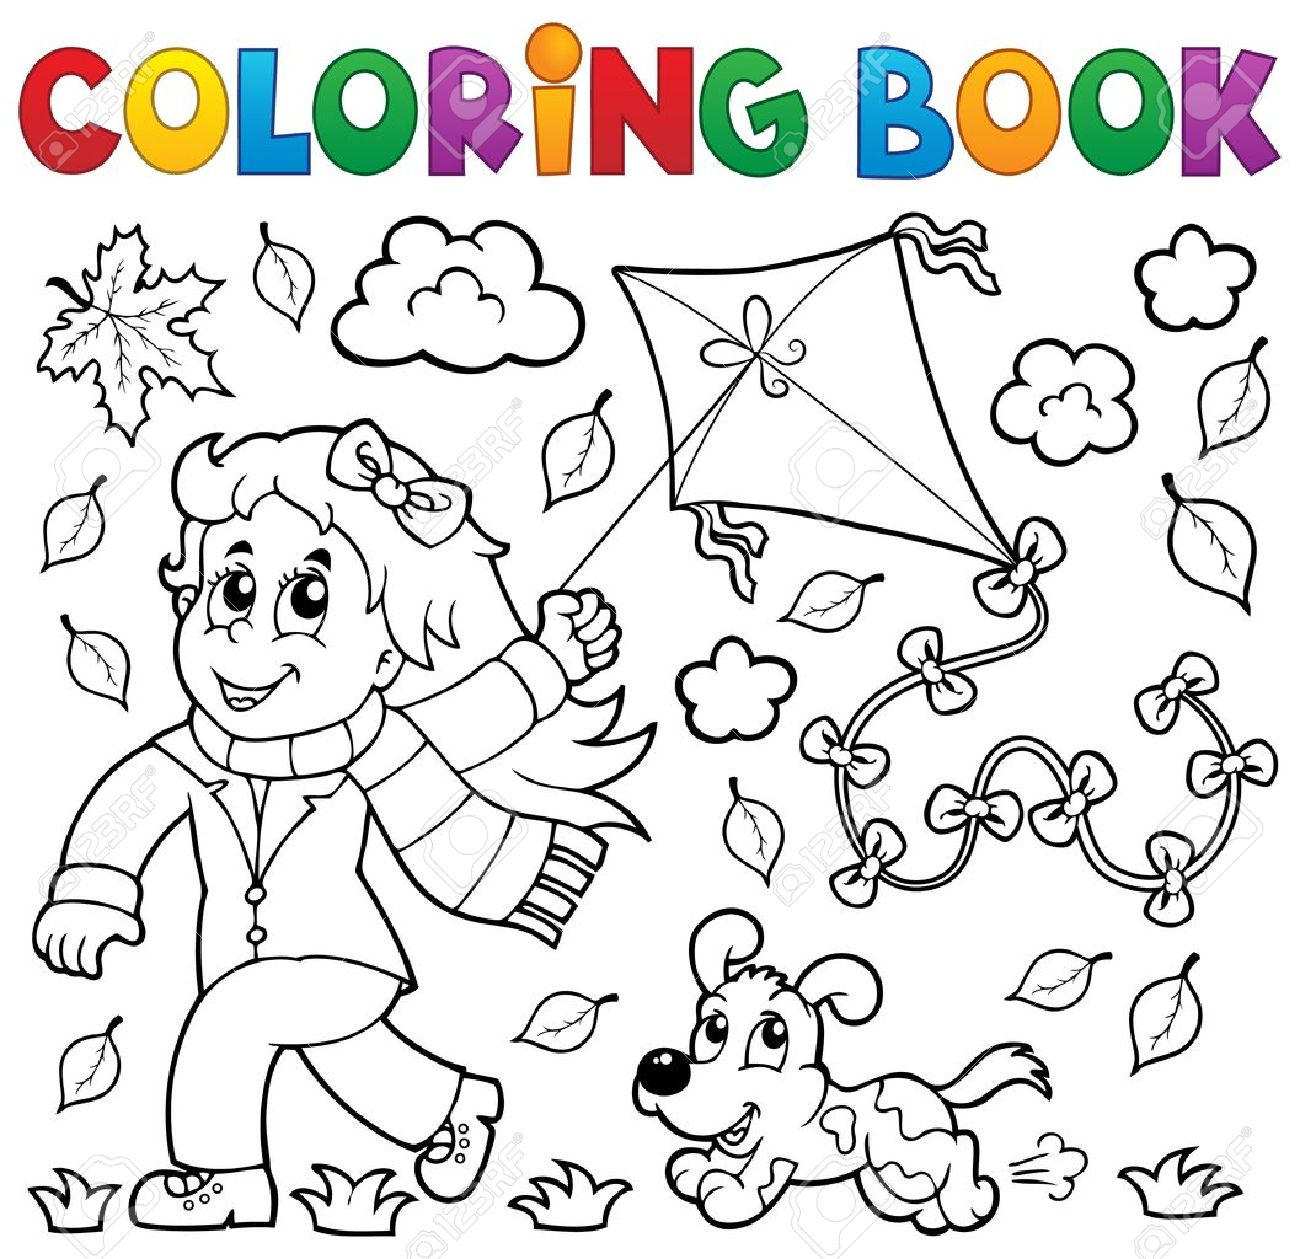 Coloring book with girl and kite - eps10 vector illustration Stock Vector - 30396440